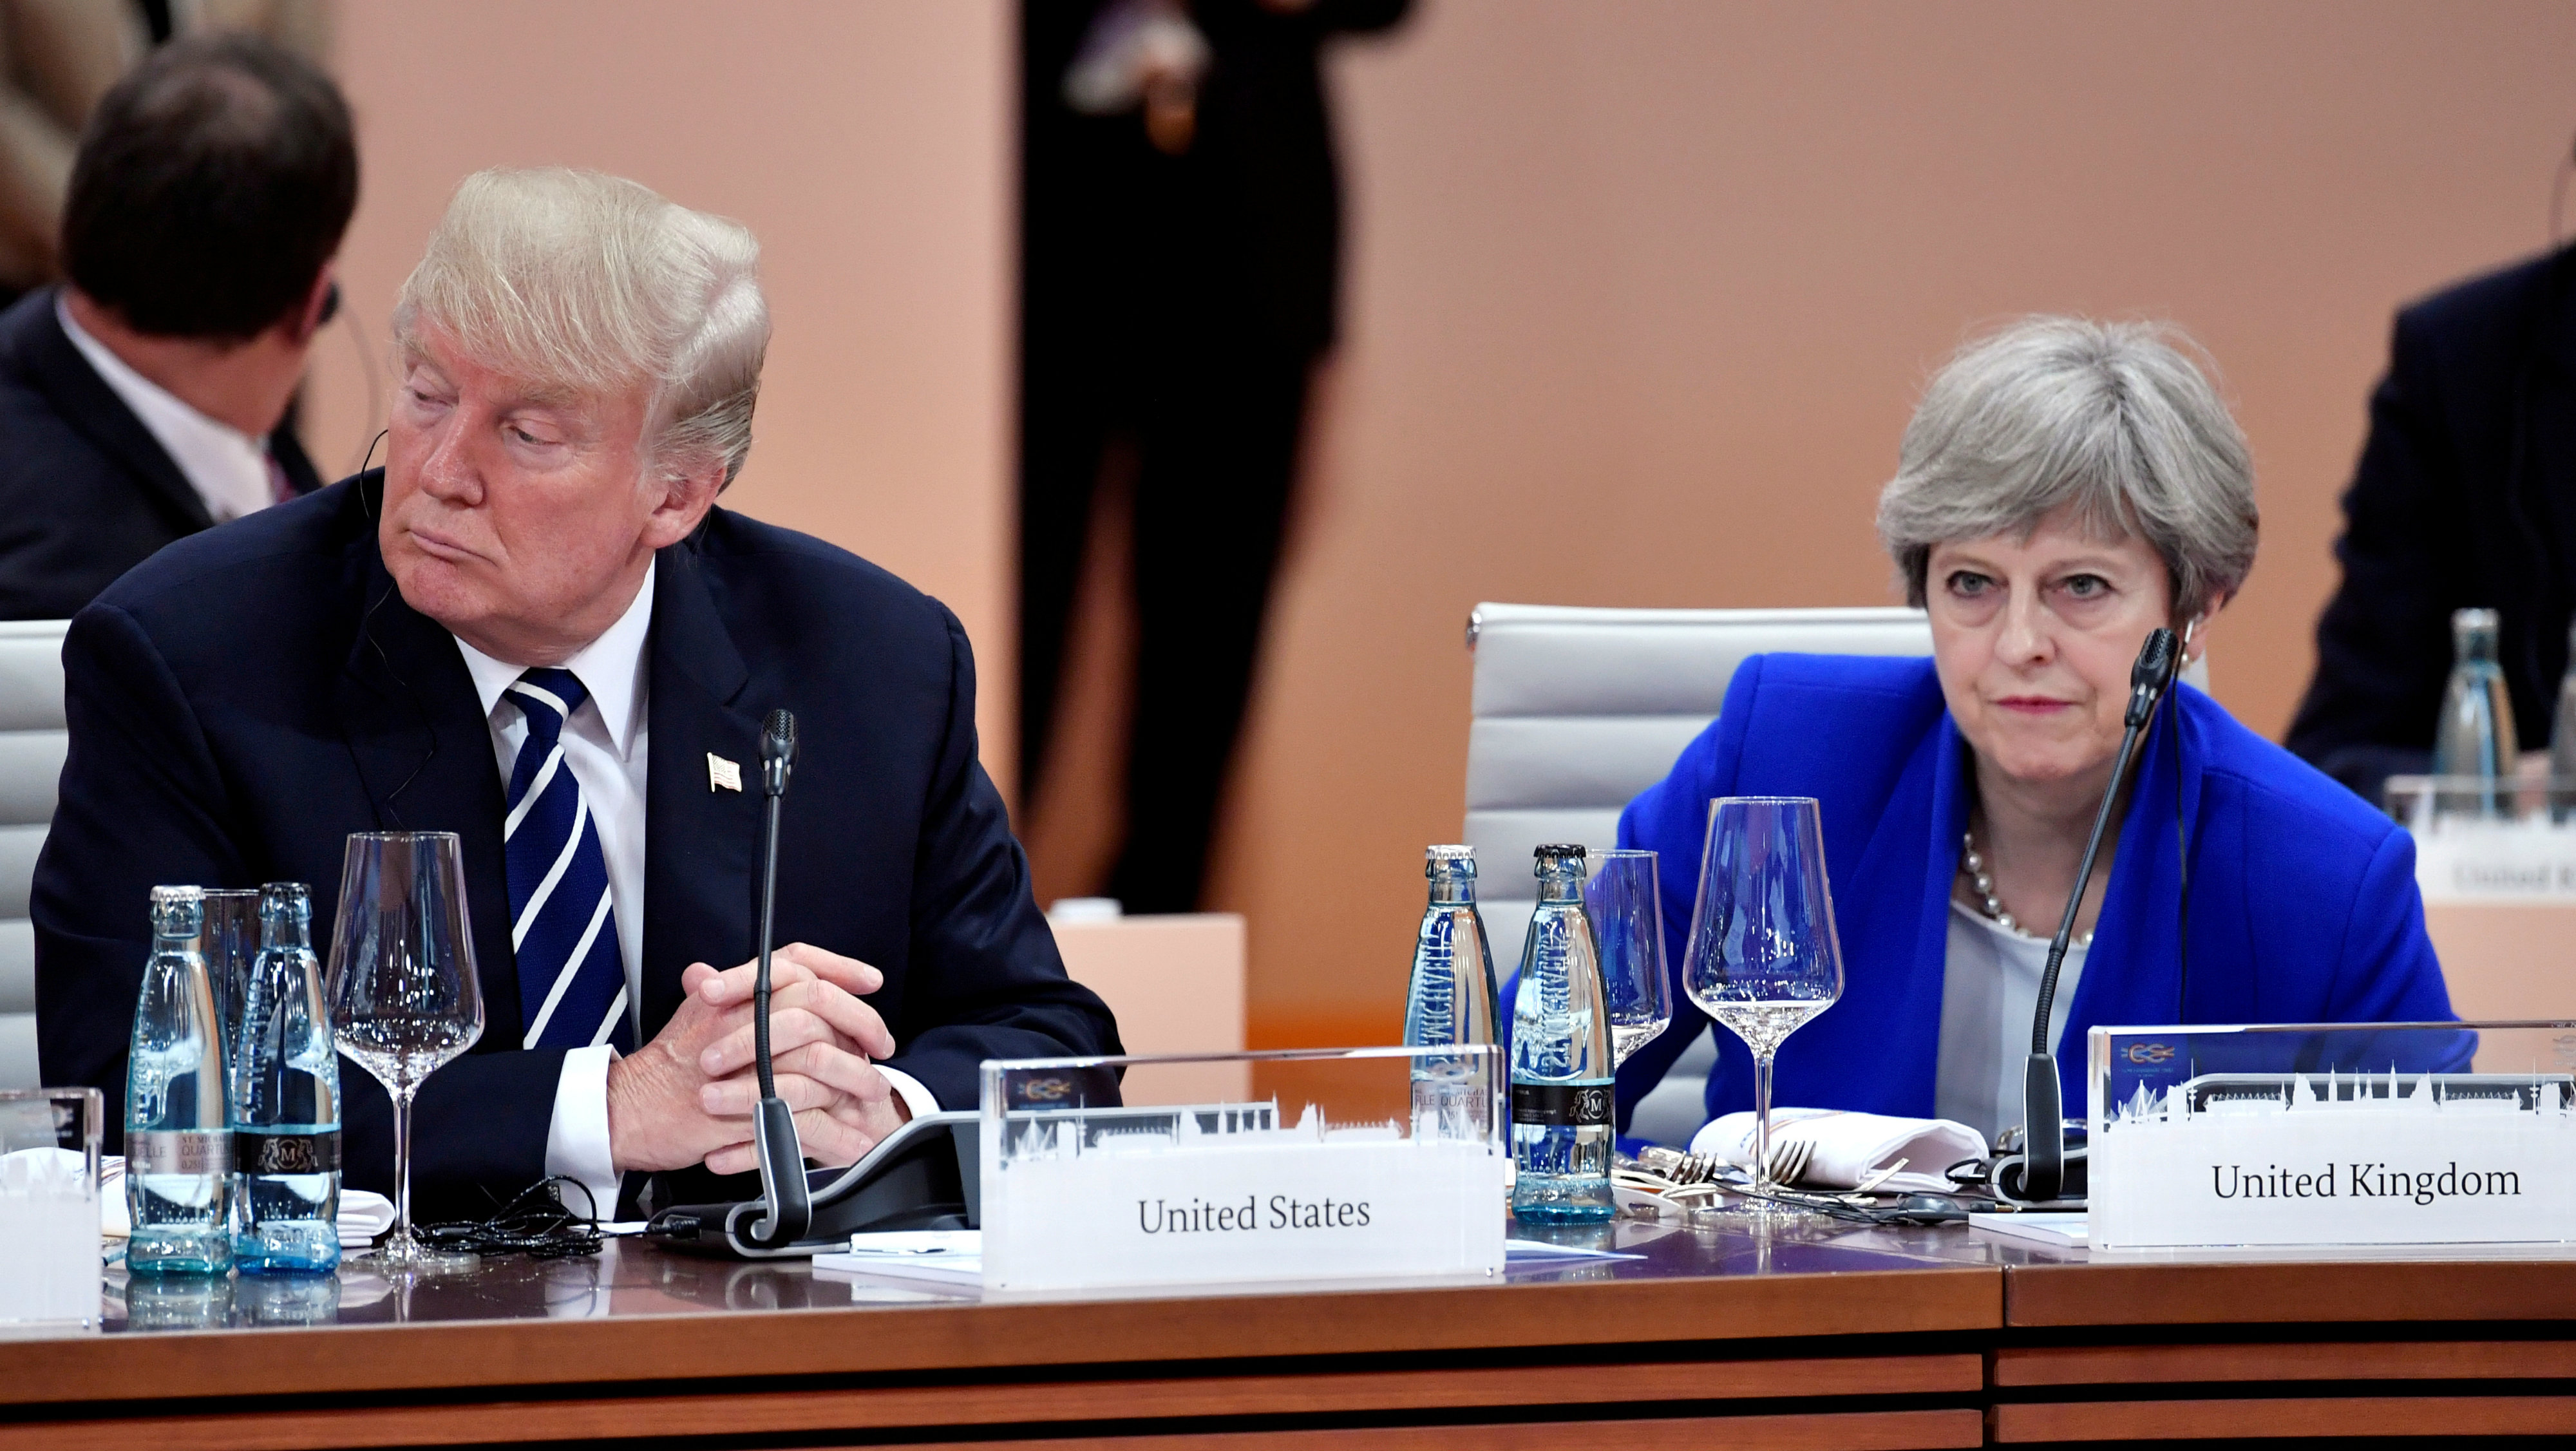 US president Donald Trump and UK prime minister Theresa May are pictured.